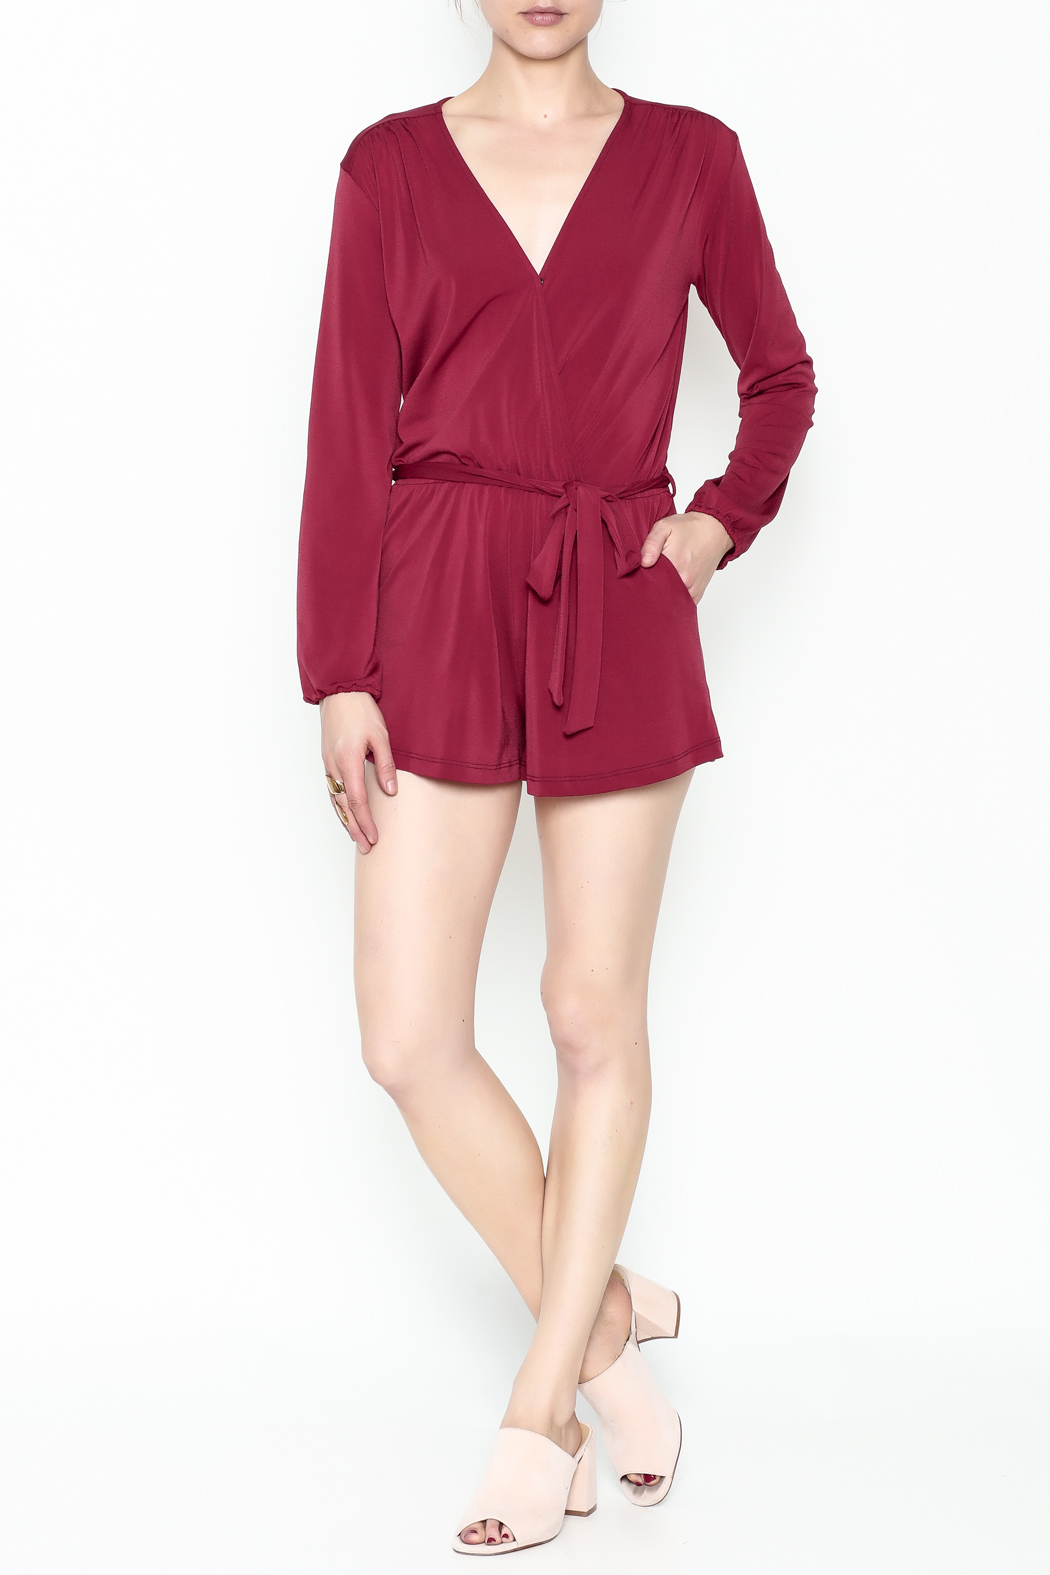 L'atiste Jasmine Red Romper - Side Cropped Image